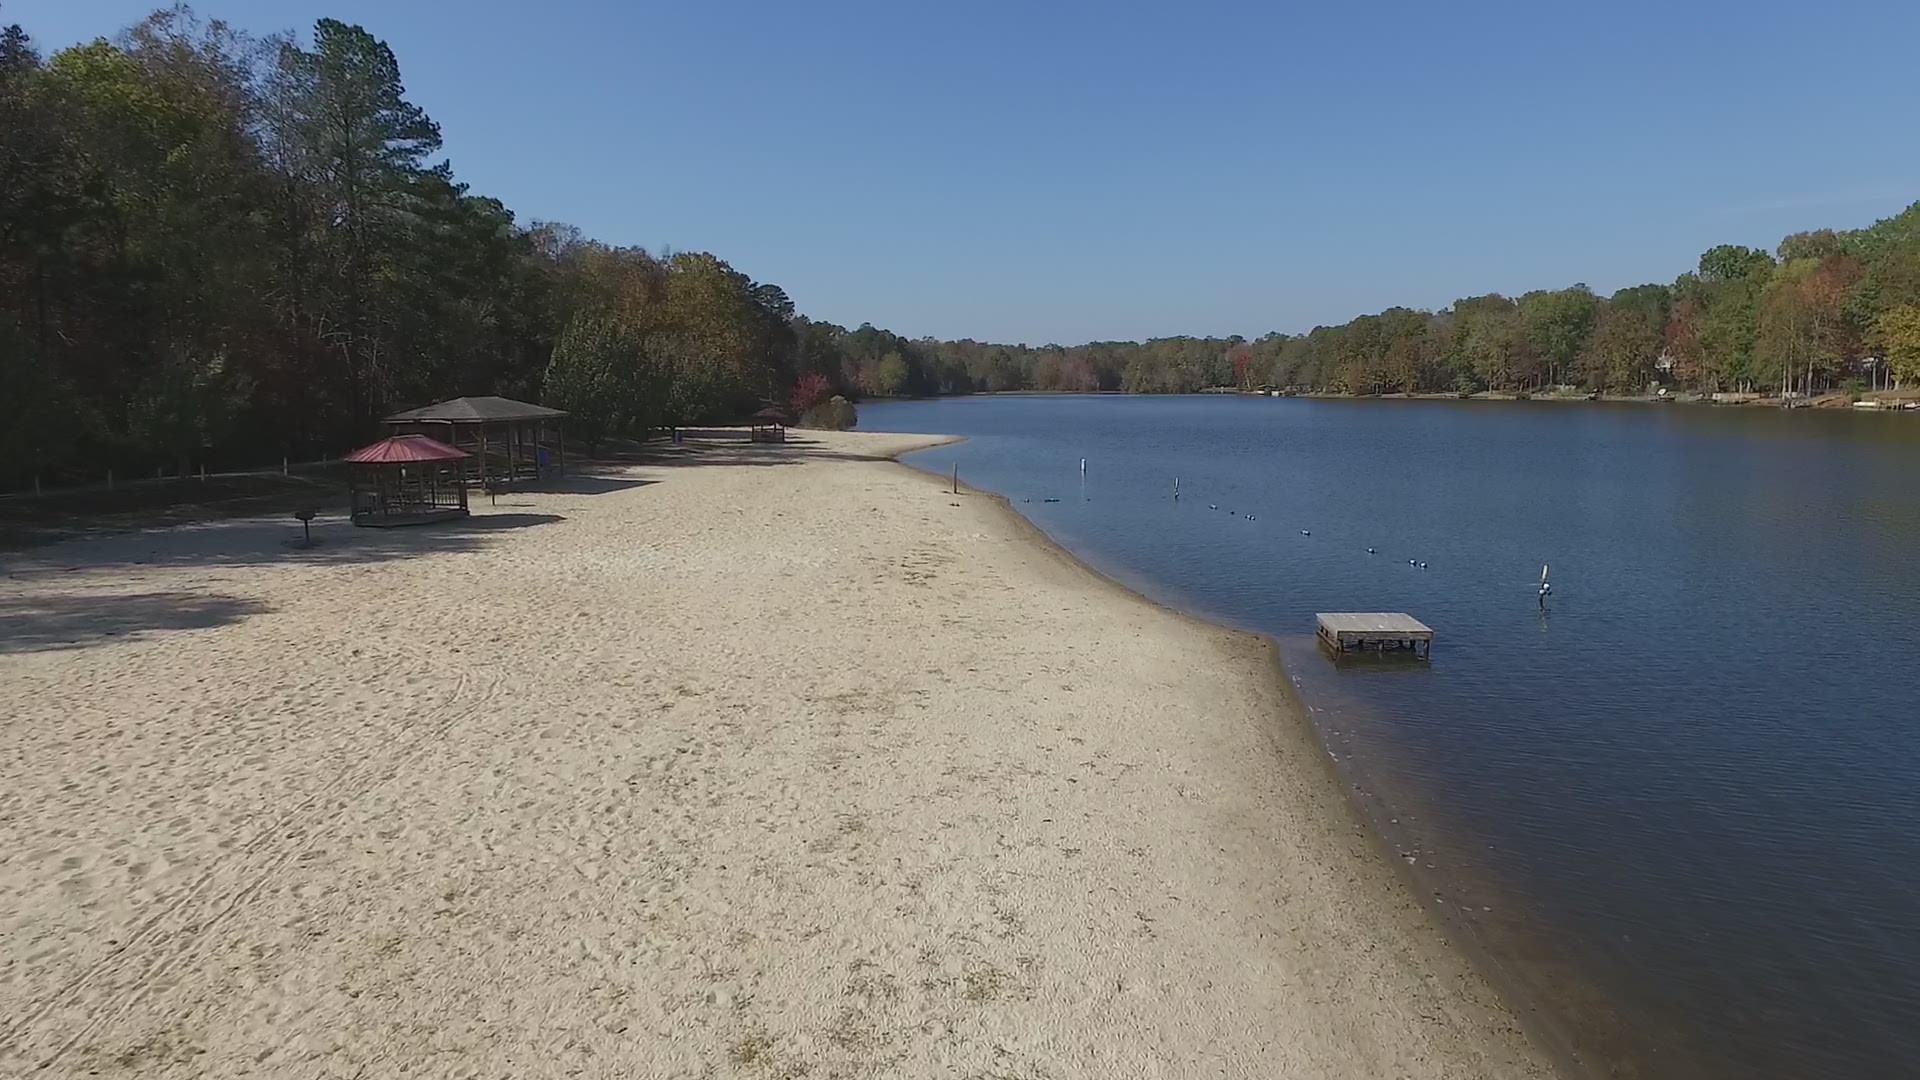 Drought affects Lake Wildwood water levels | 13wmaz.com